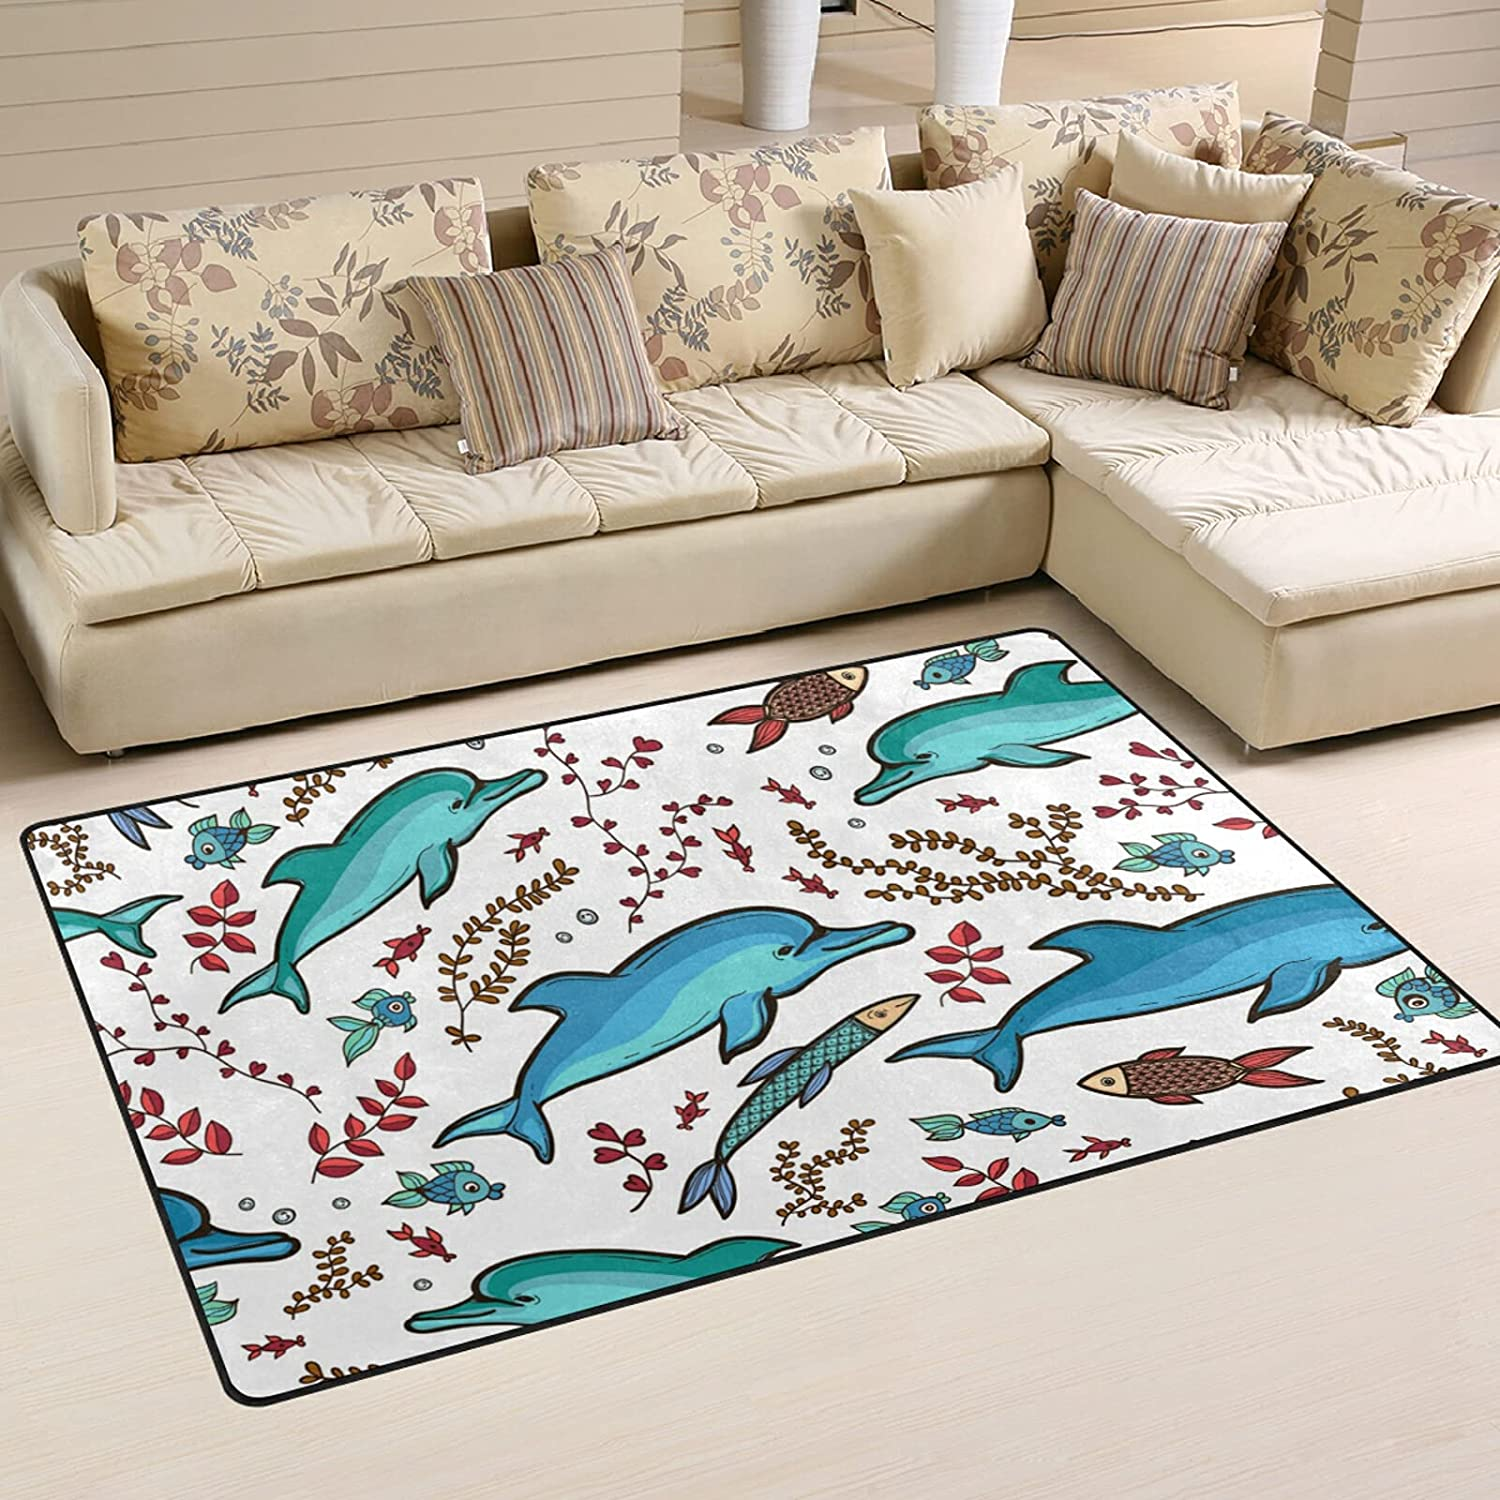 Dolphin Fish Pattern Max 71% OFF Large Soft Area Rug Rugs Max 55% OFF Nursery Ma Playmat